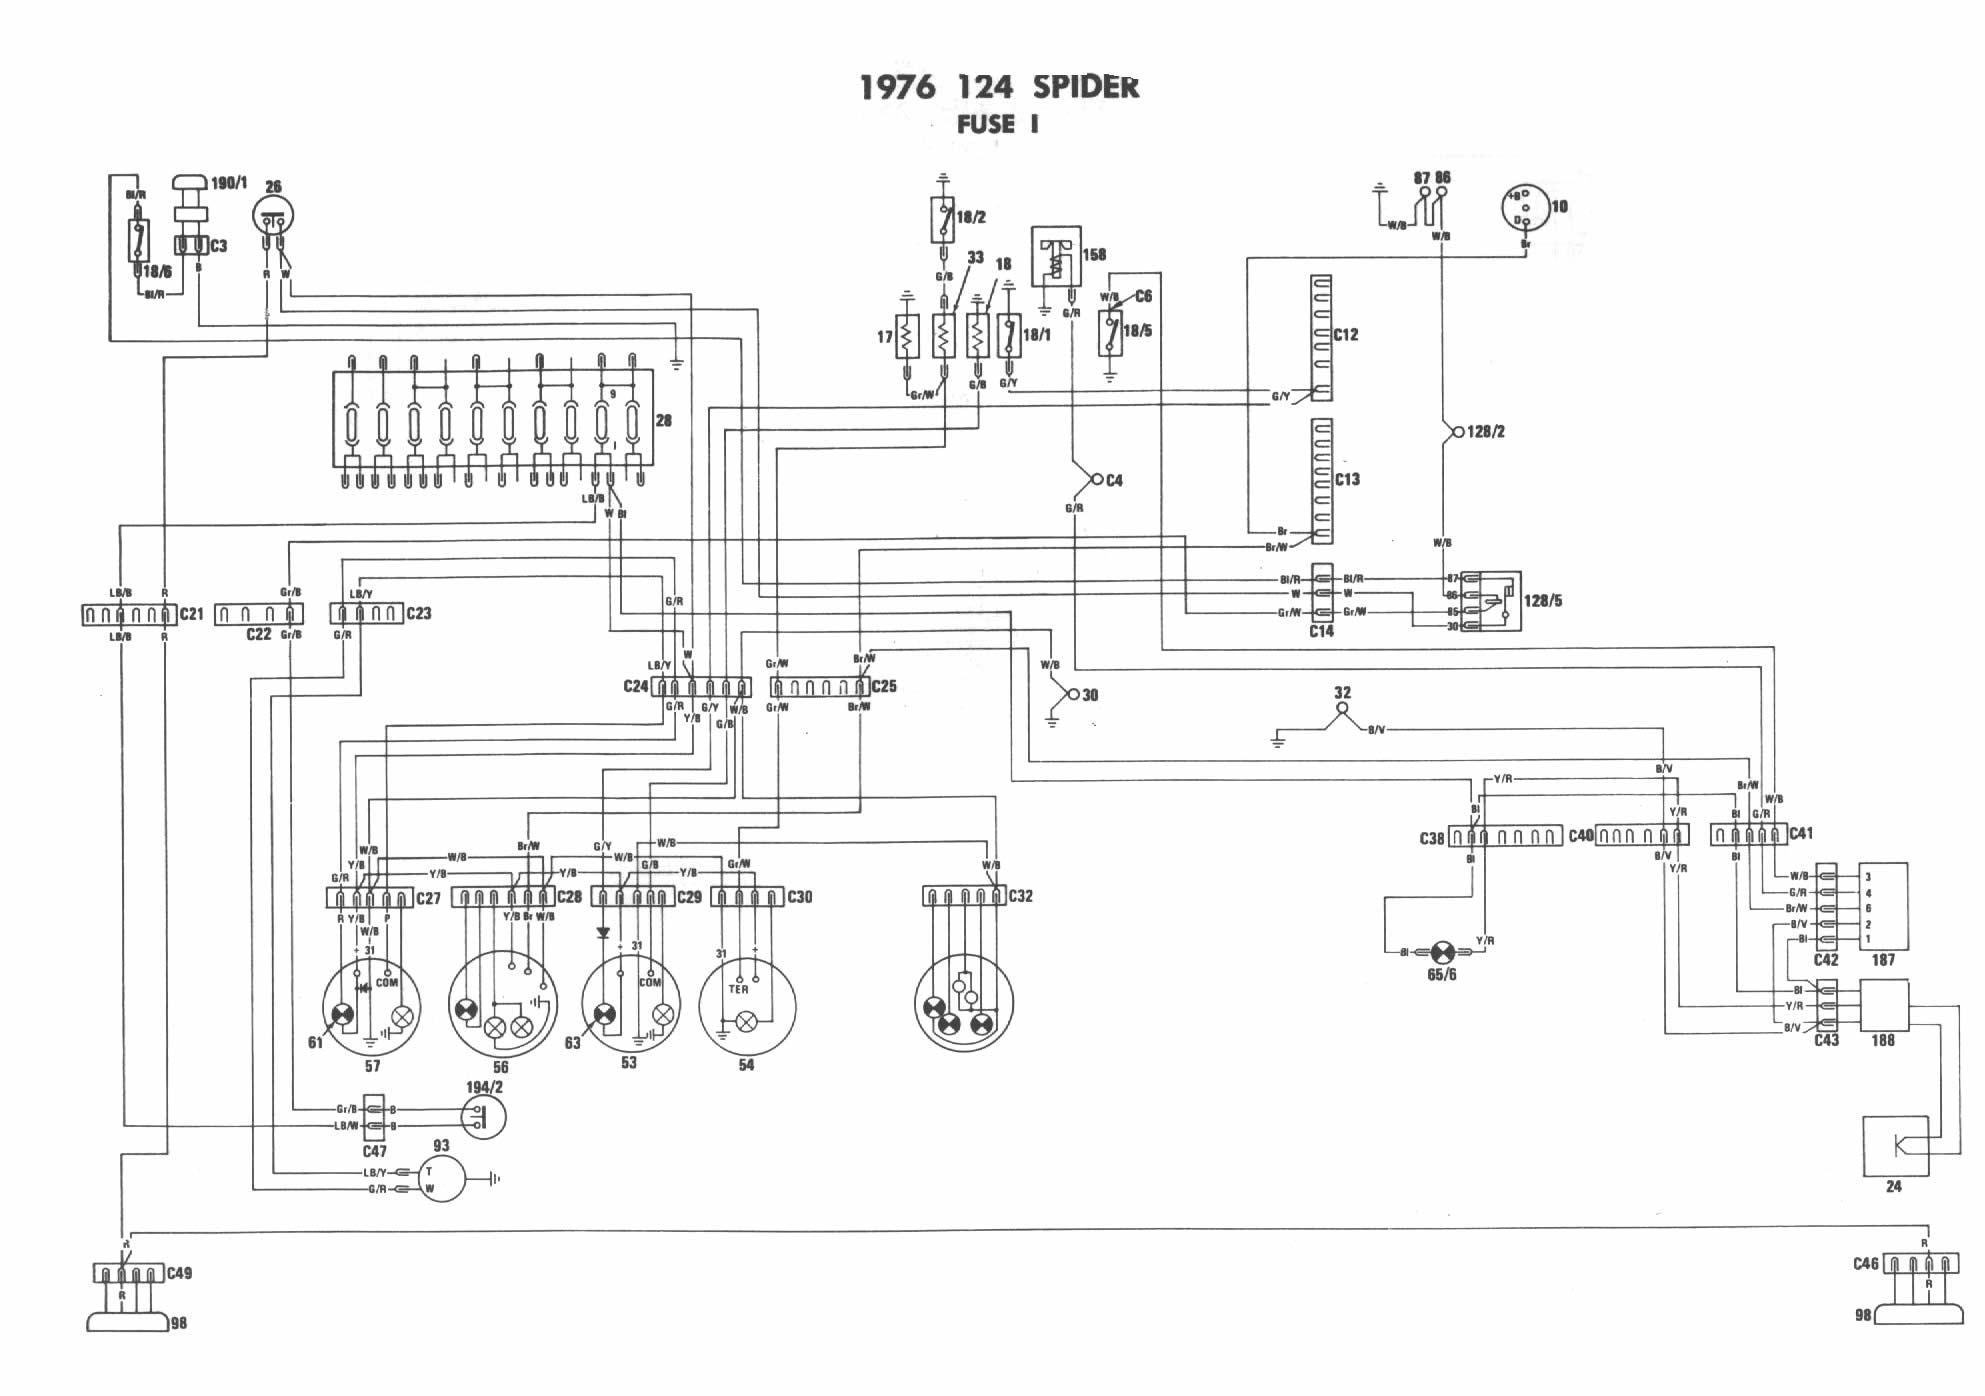 1974 fiat 124 spider wiring diagram